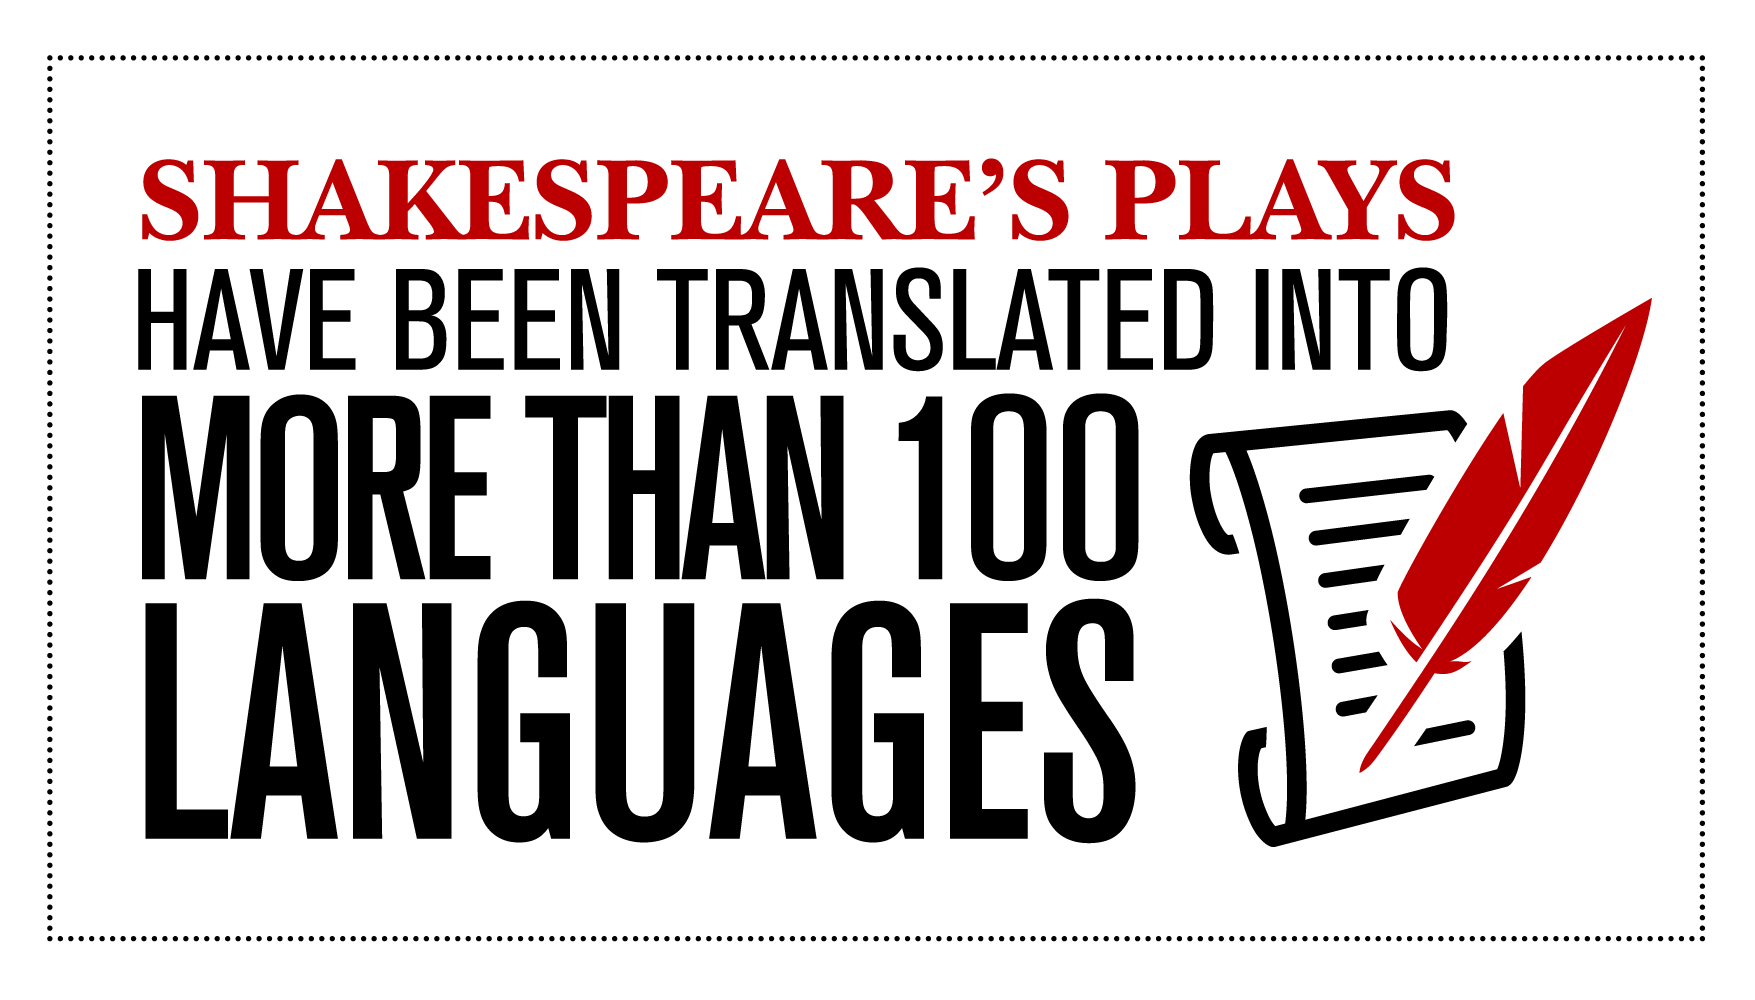 Shakespeare's plays have been translated into more than 100 languages